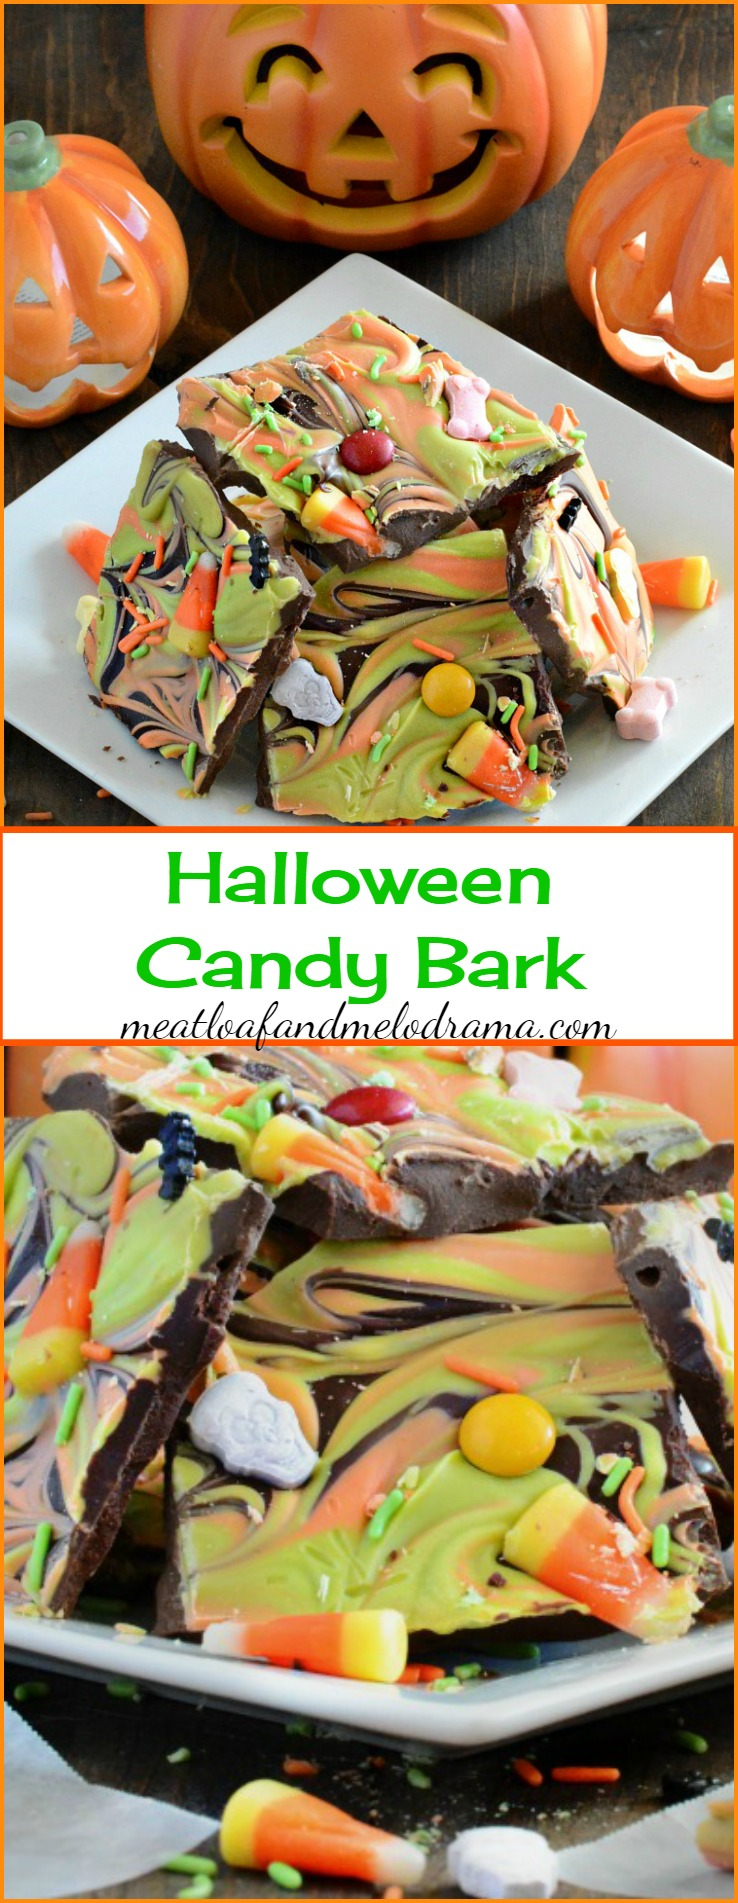 Easy Halloween Candy Bark Recipe